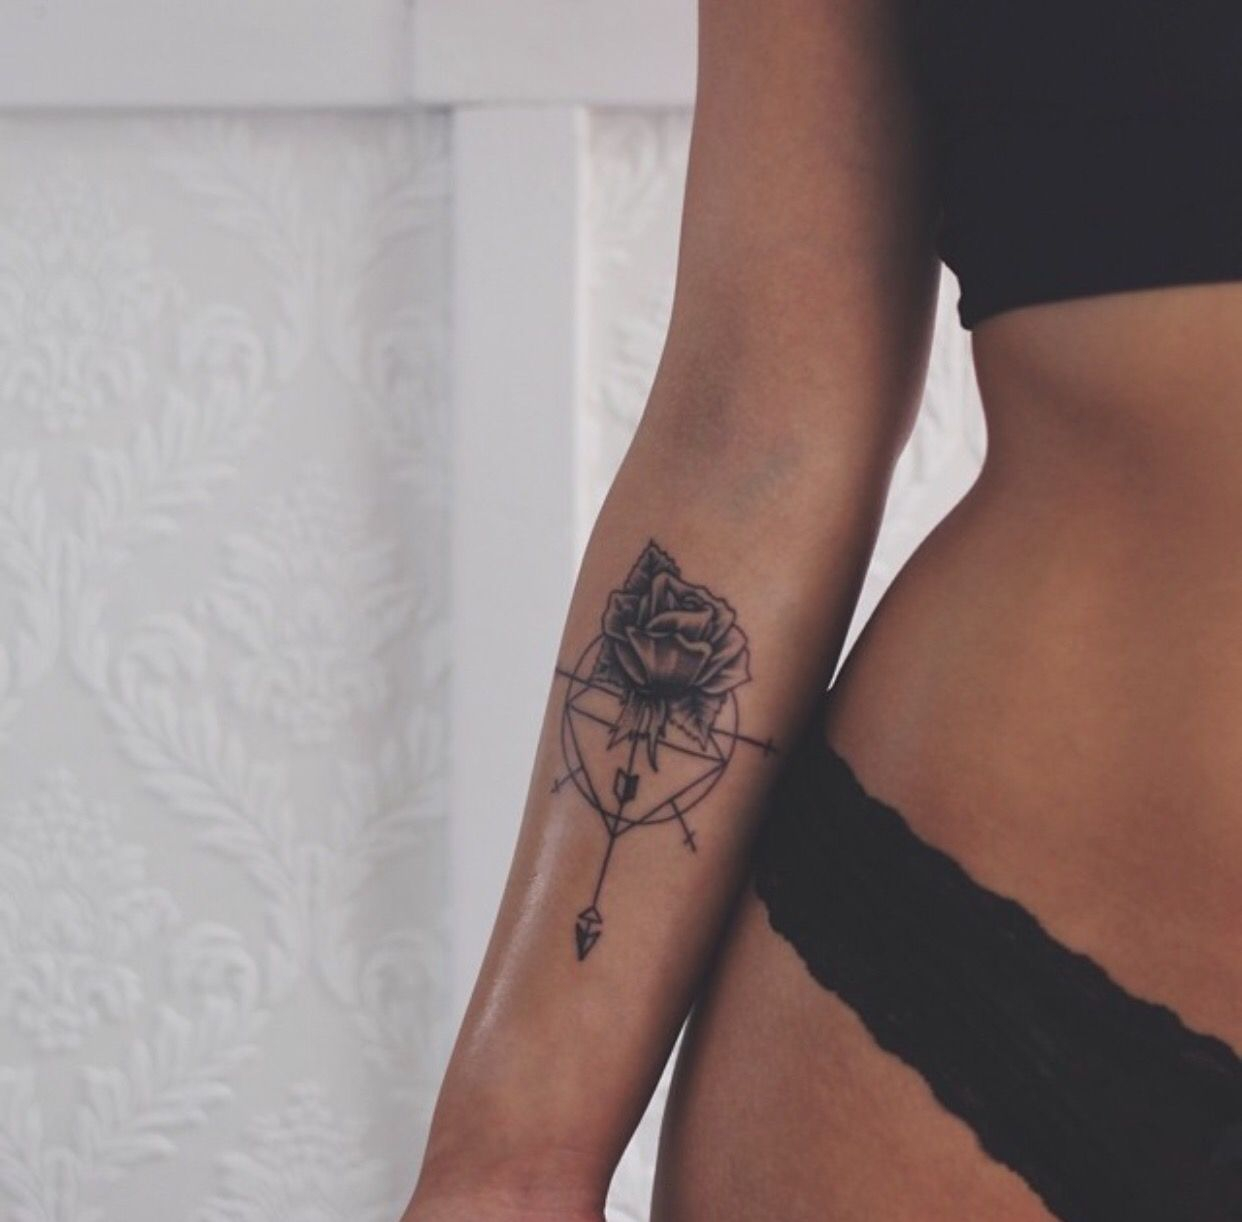 Tattoo Rose Arrow Underarm Arm Bliss Pinte intended for dimensions 1242 X 1222